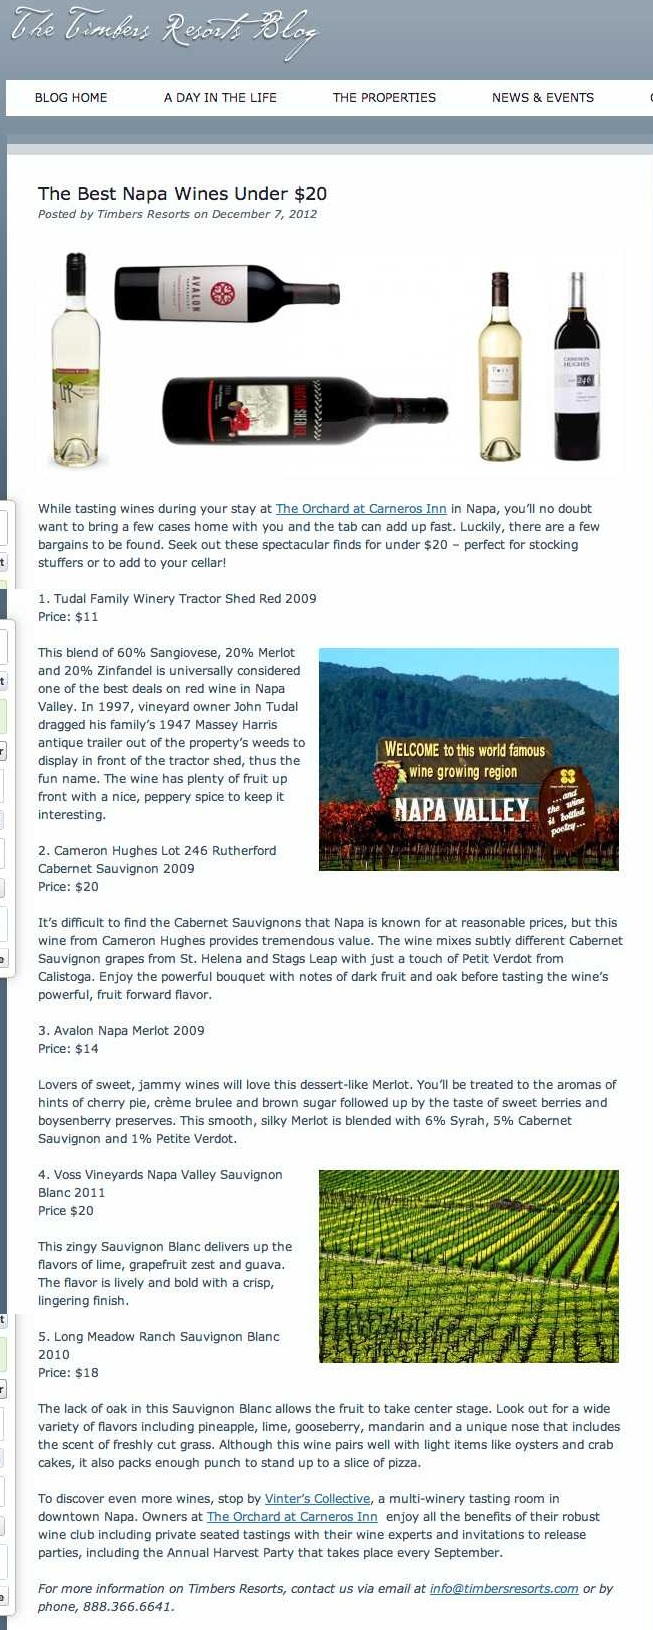 The Best Napa Wines Under $20 - Timbers Resorts